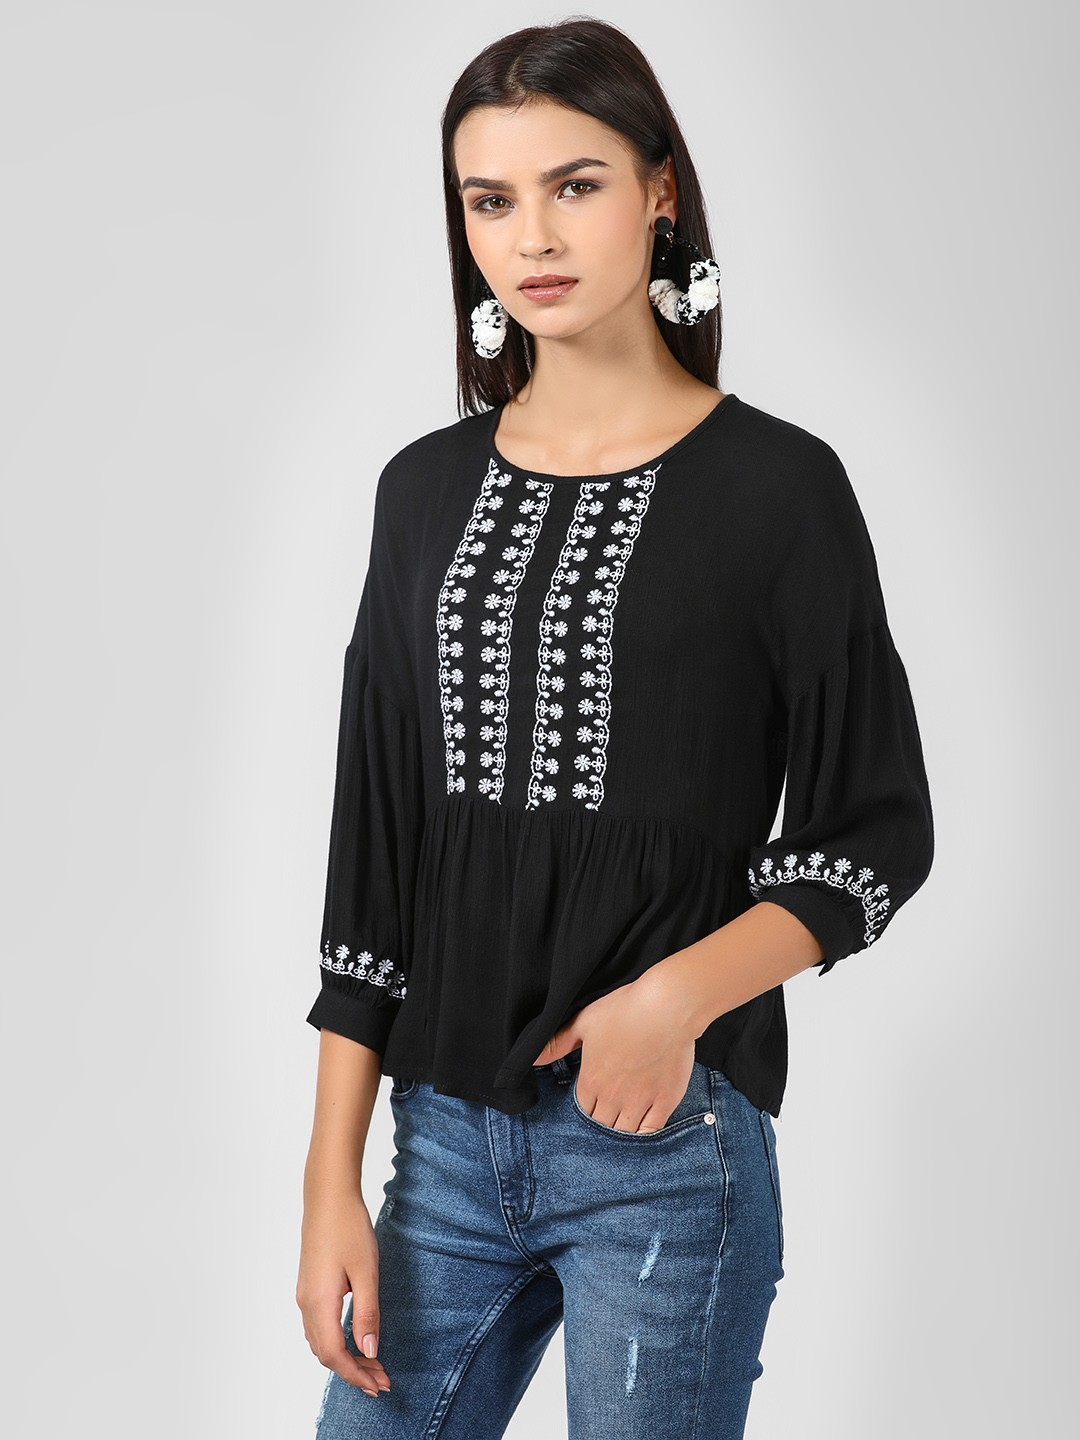 Sbuys Black Blouse With Embroidery 1